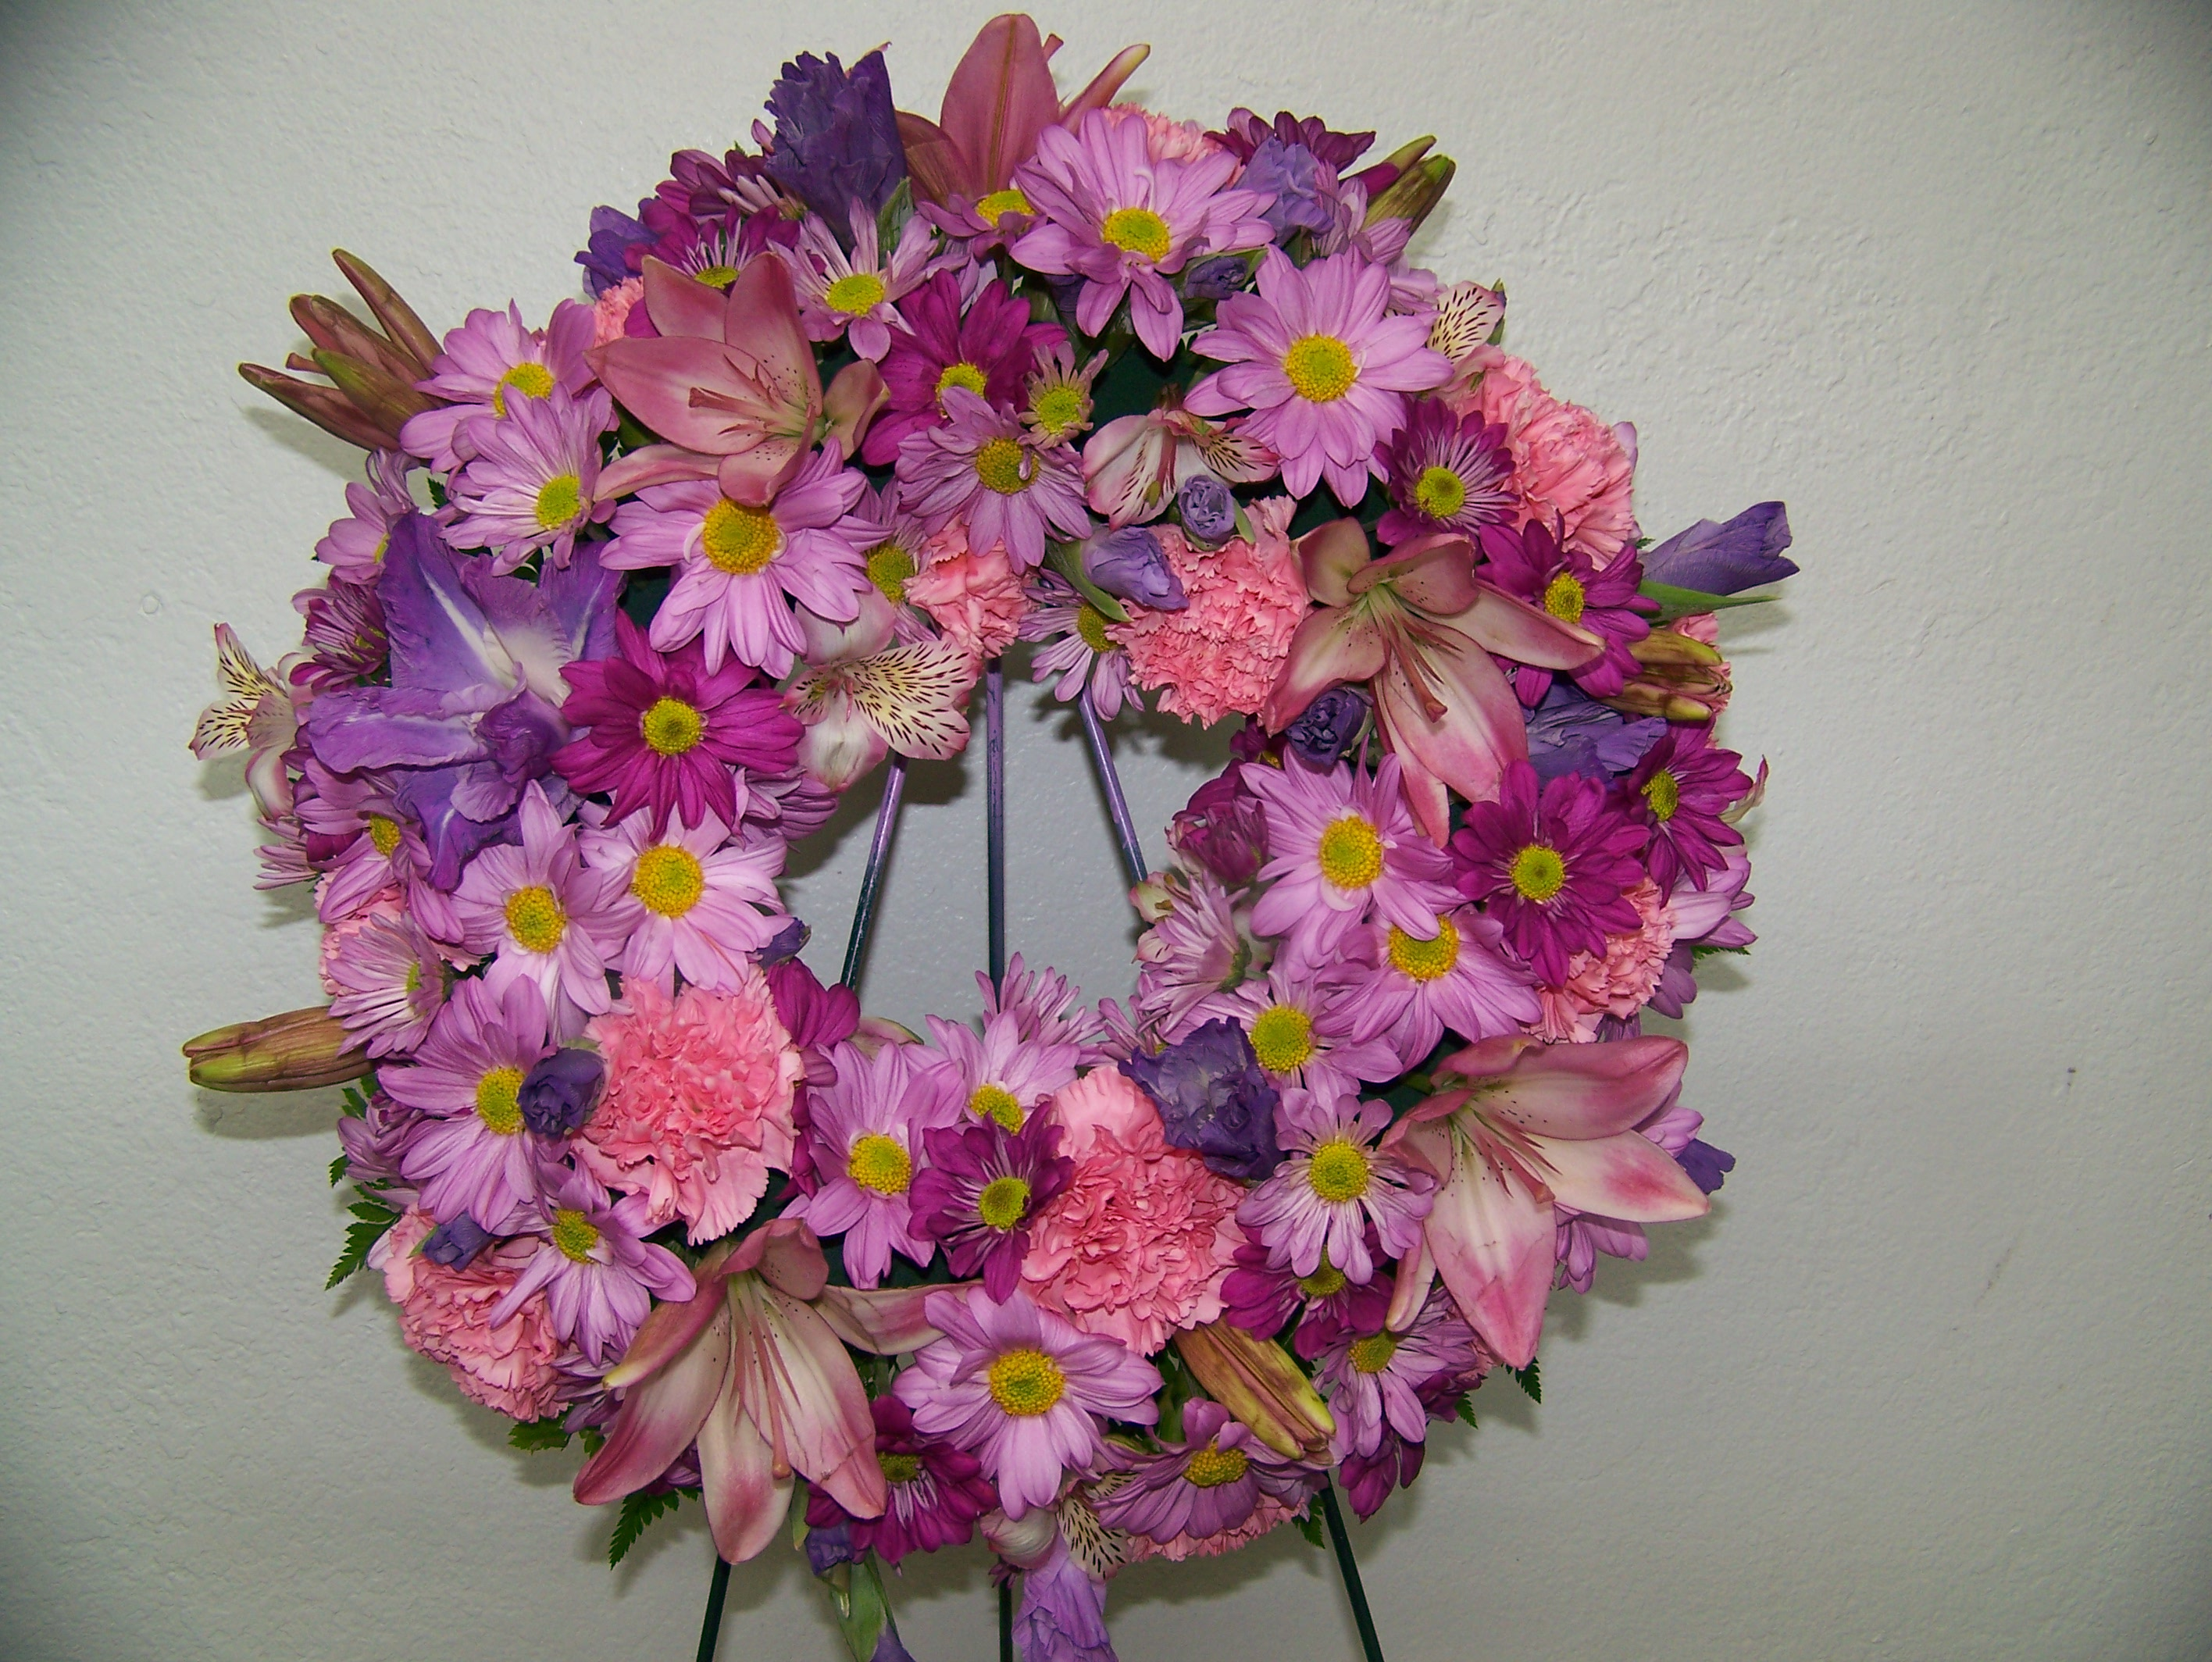 Barstow Flower Bridal Boutique : Heavenly wreath barstow floral bridal